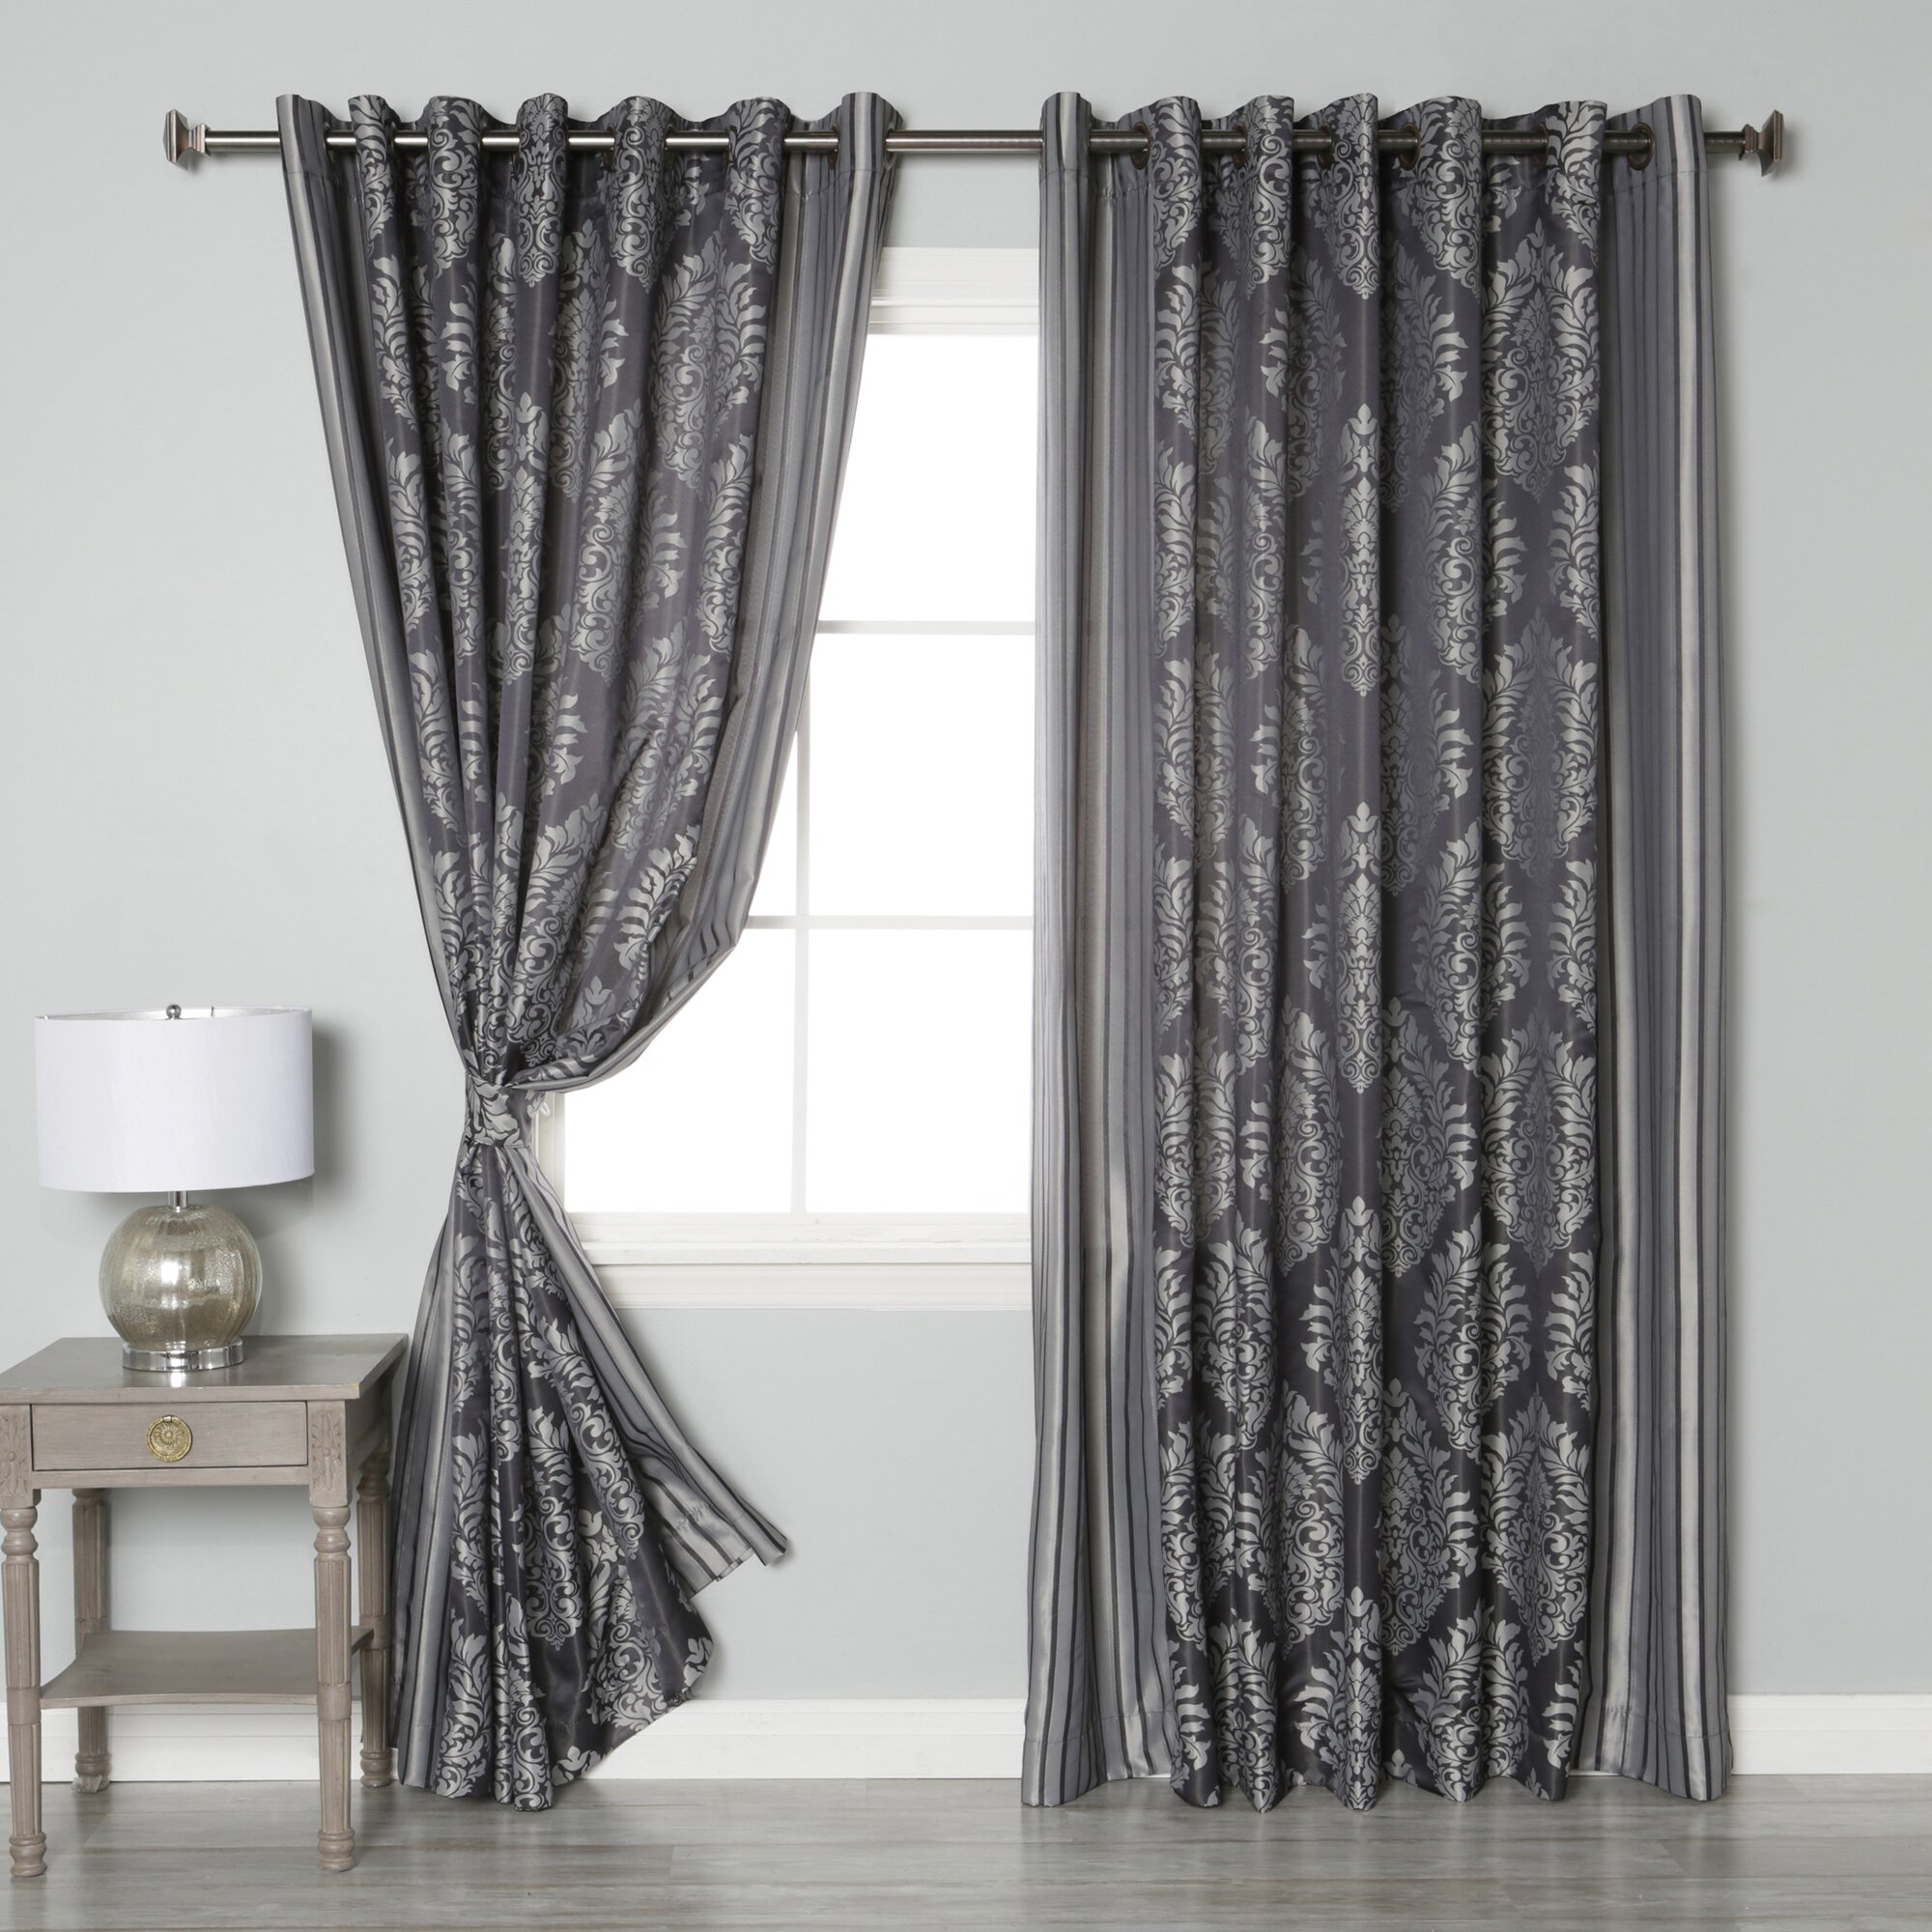 Best Home Fashion Inc Wide Width Damask Jacquard Grommet